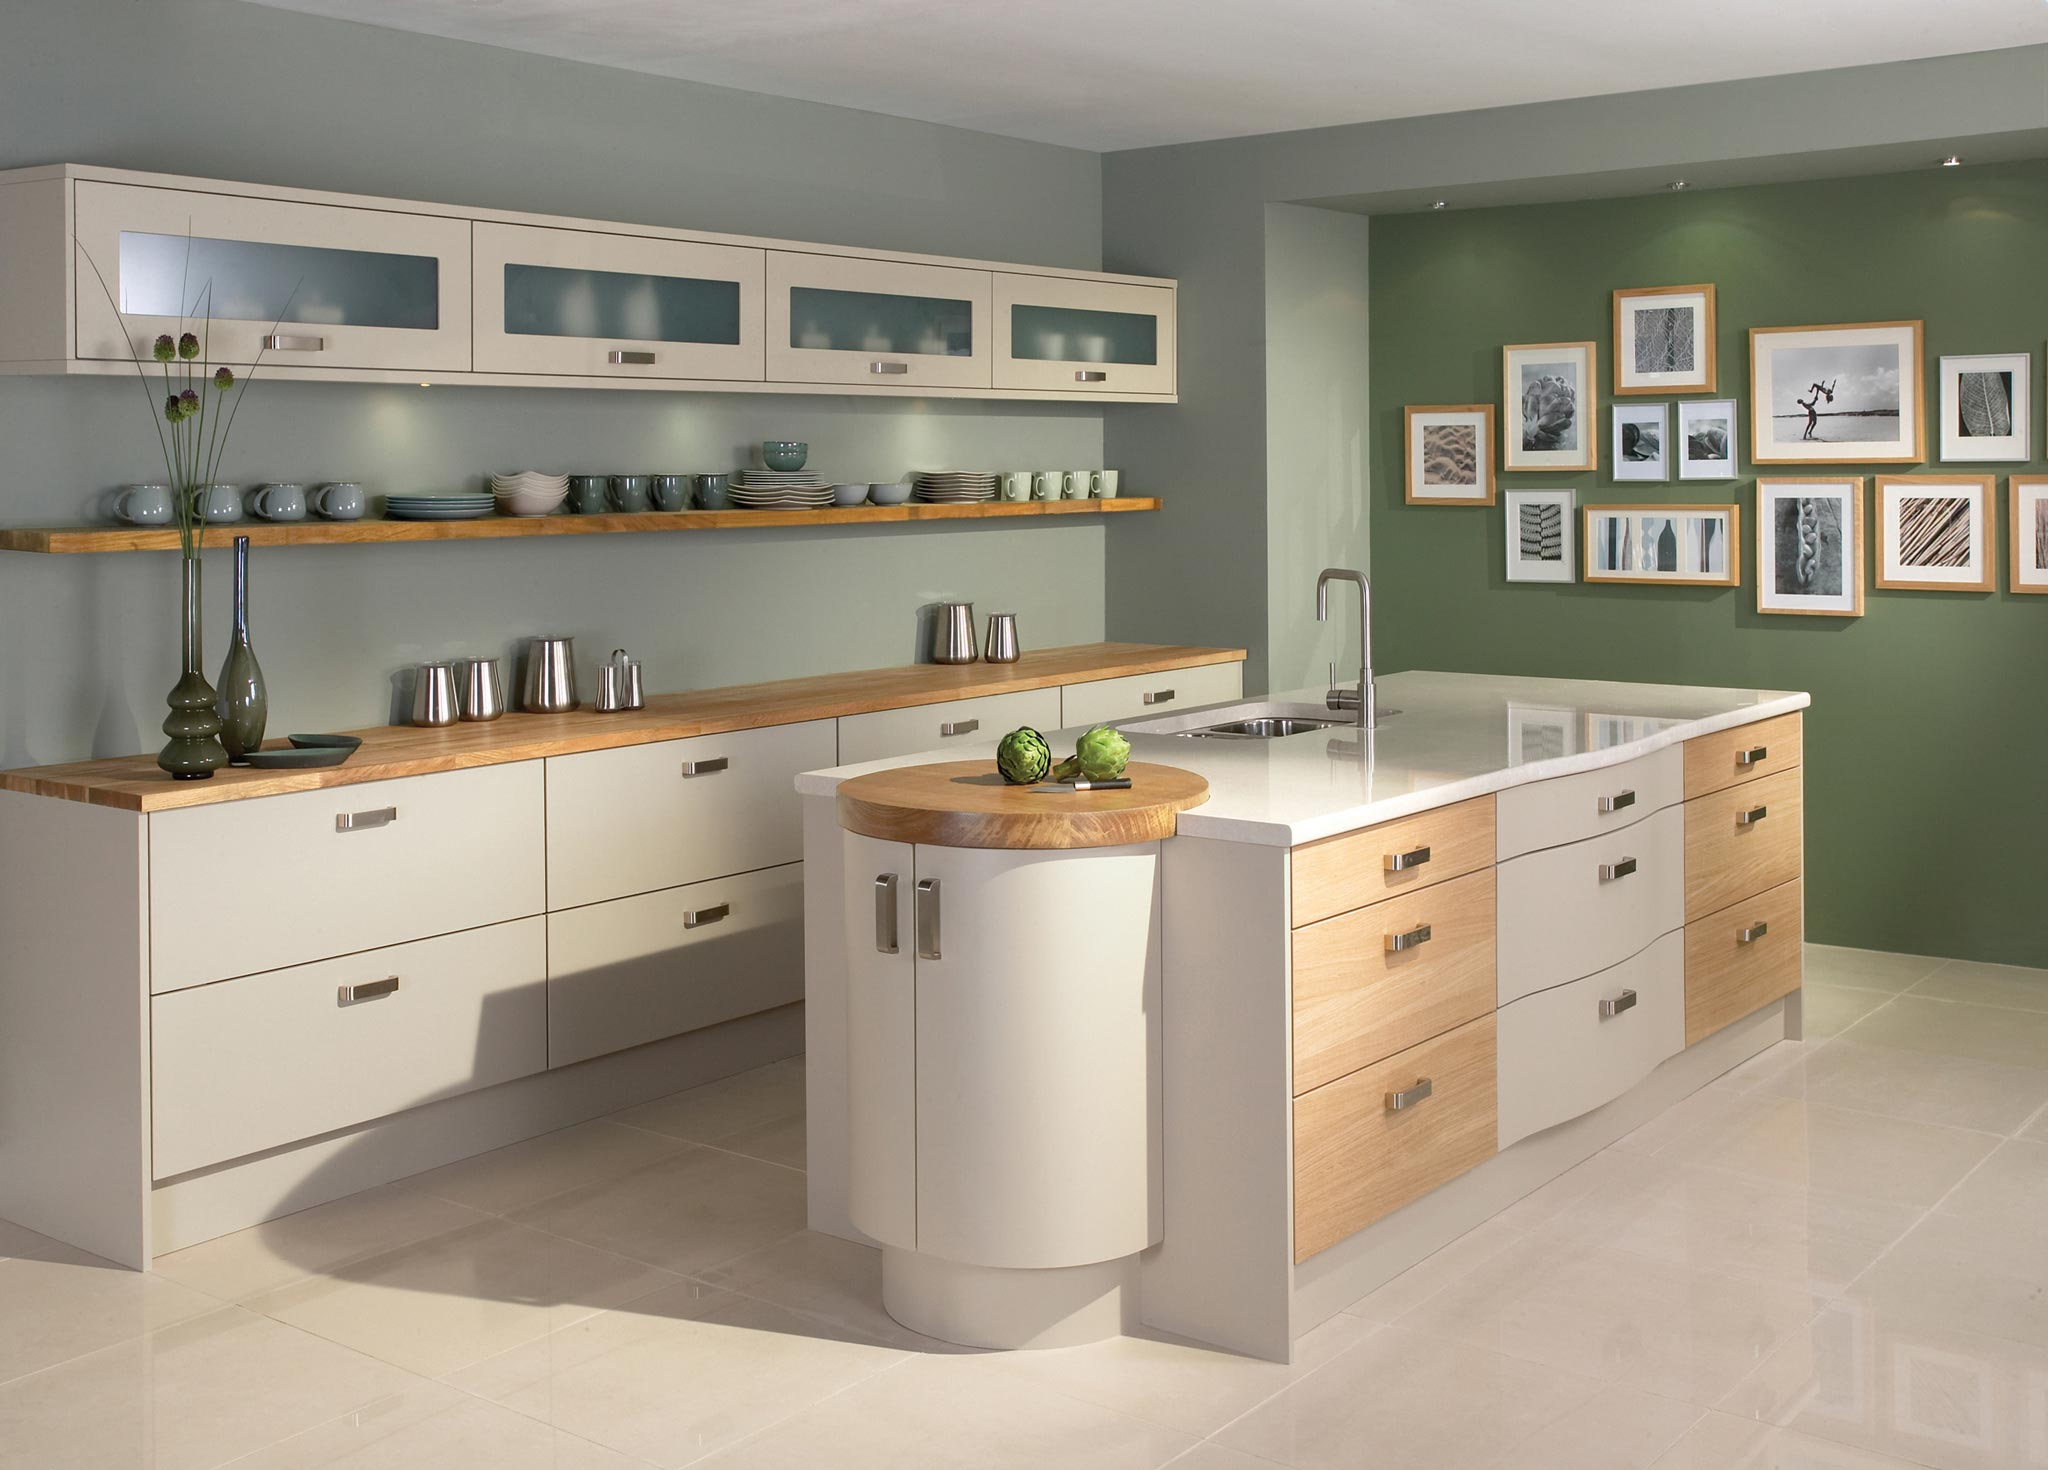 Alto Textured Kitchens Supafit Bedrooms And Kitchens